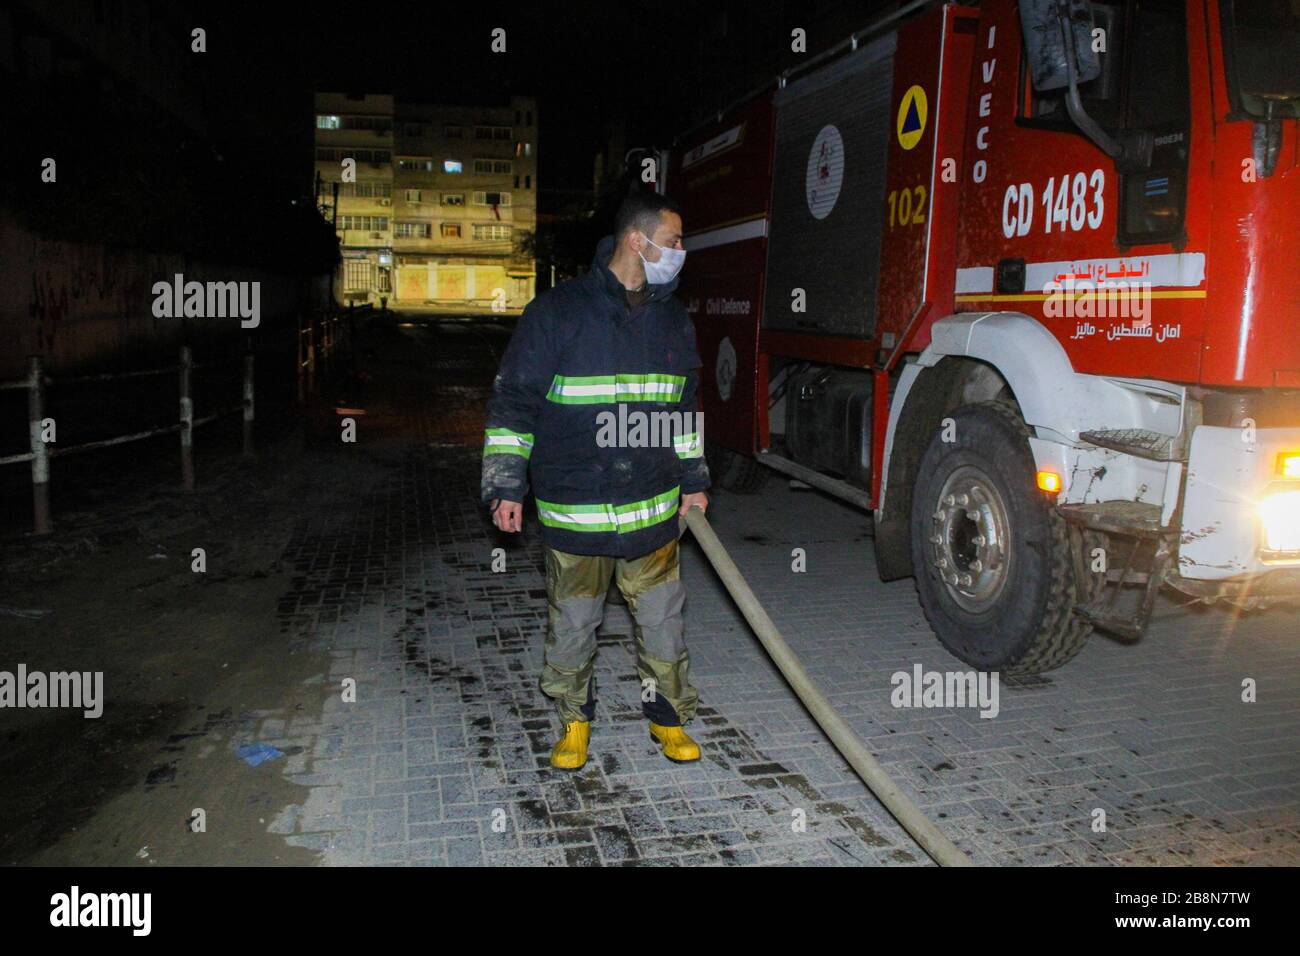 Christmas 2020 Emergency District Diggy 8656 High Resolution Stock Photography and Images   Alamy